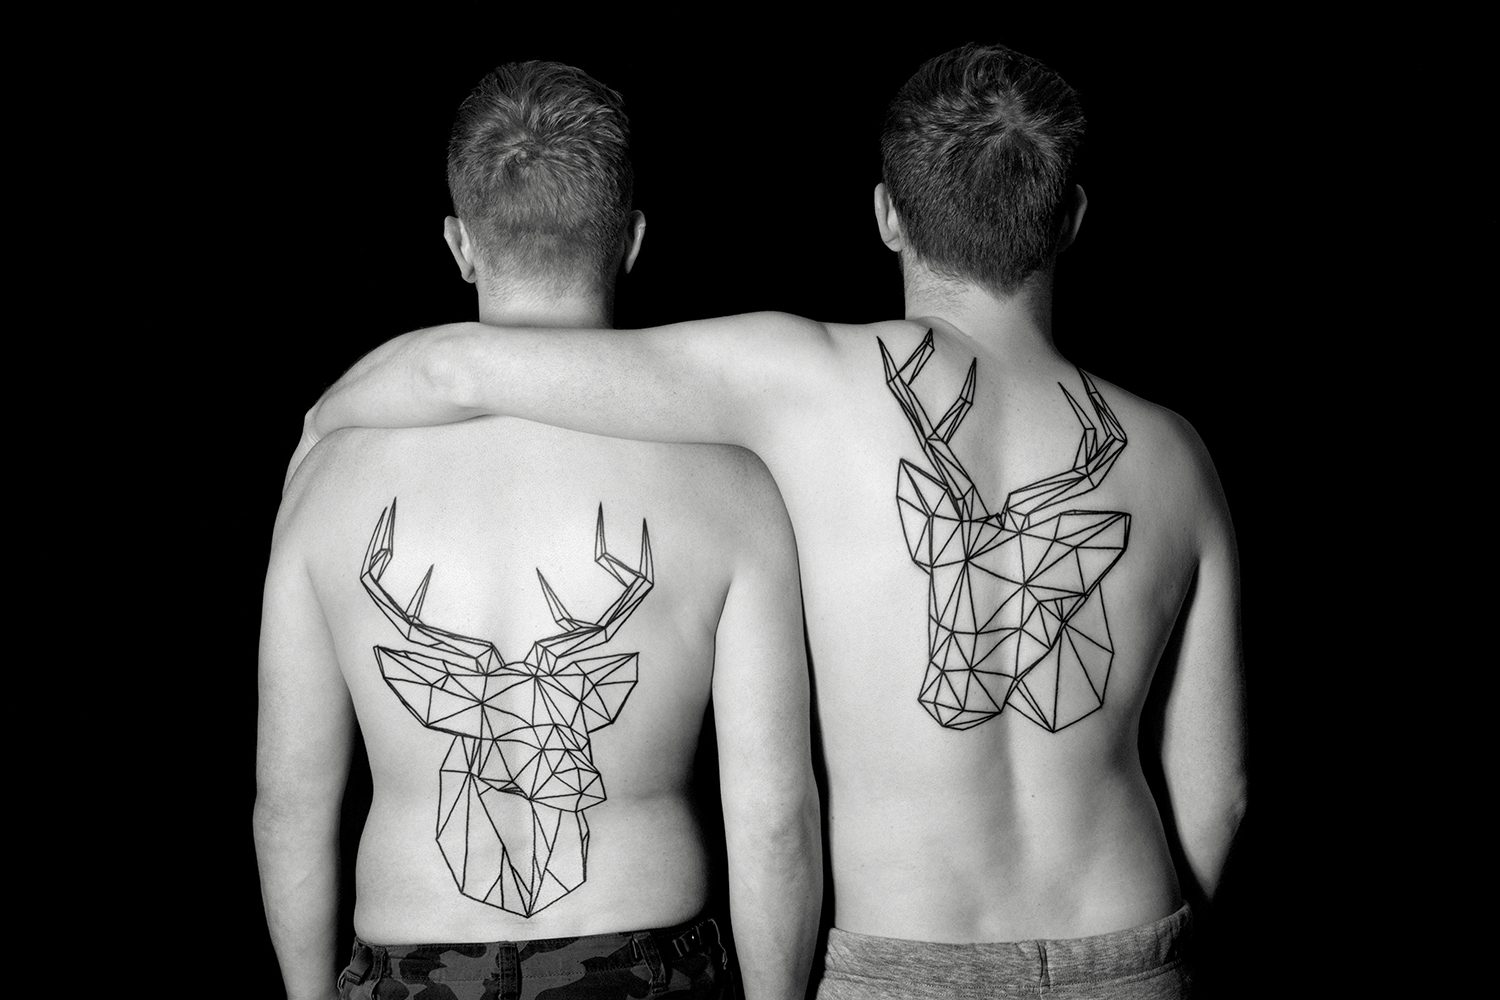 stag tattoos on back, two men. photo © erik weiss